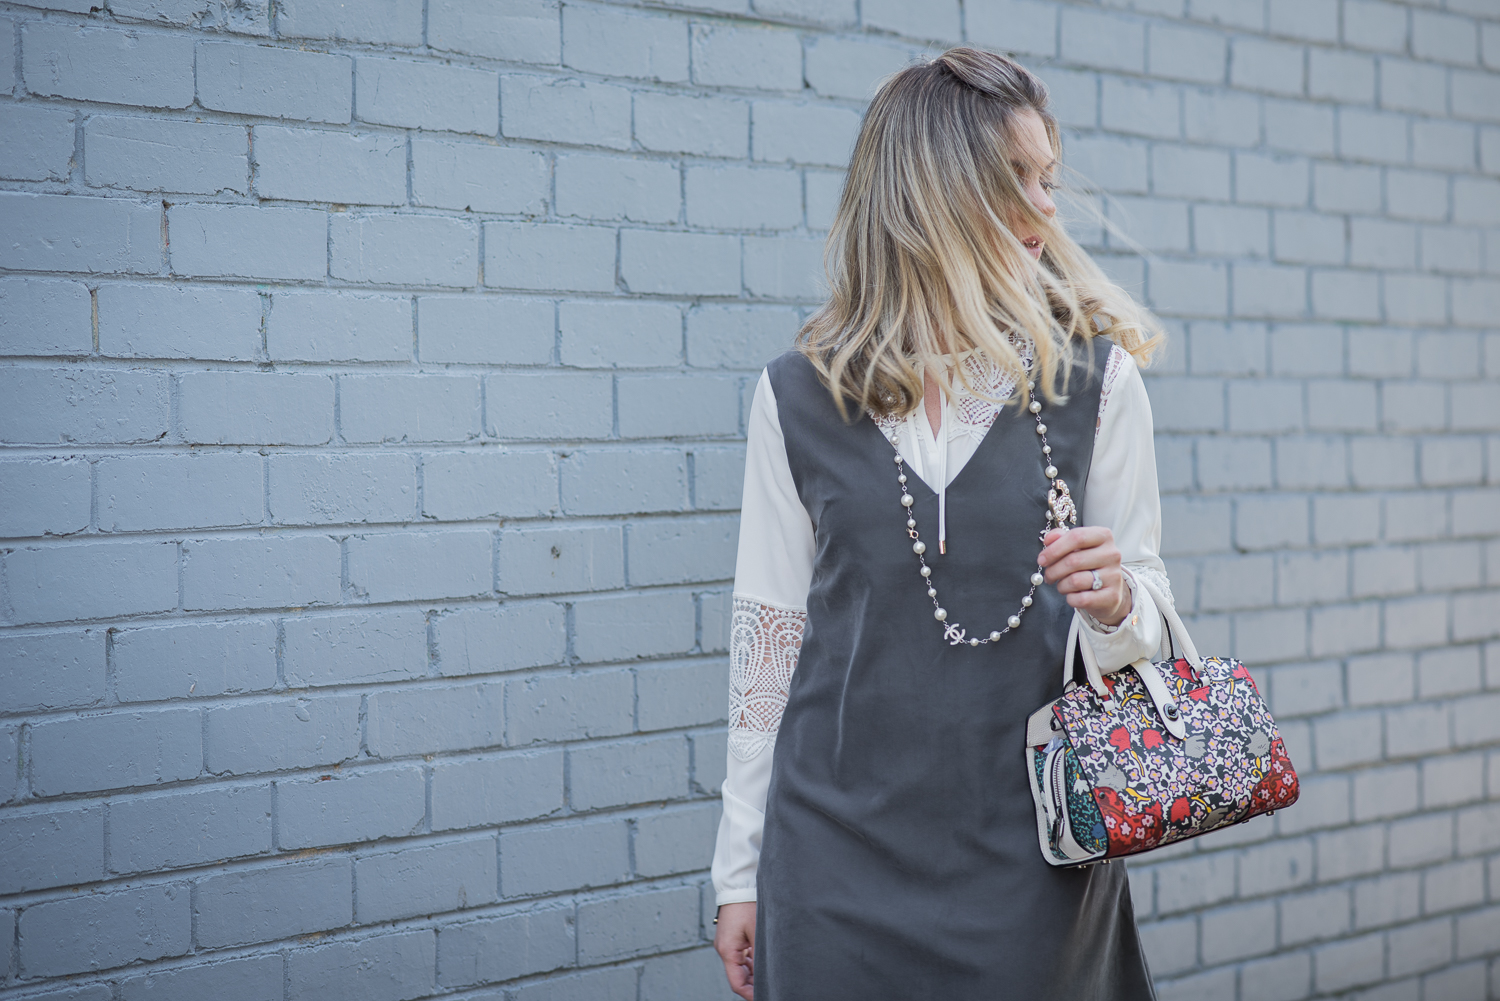 melbourne-street-style-wwkd_0036